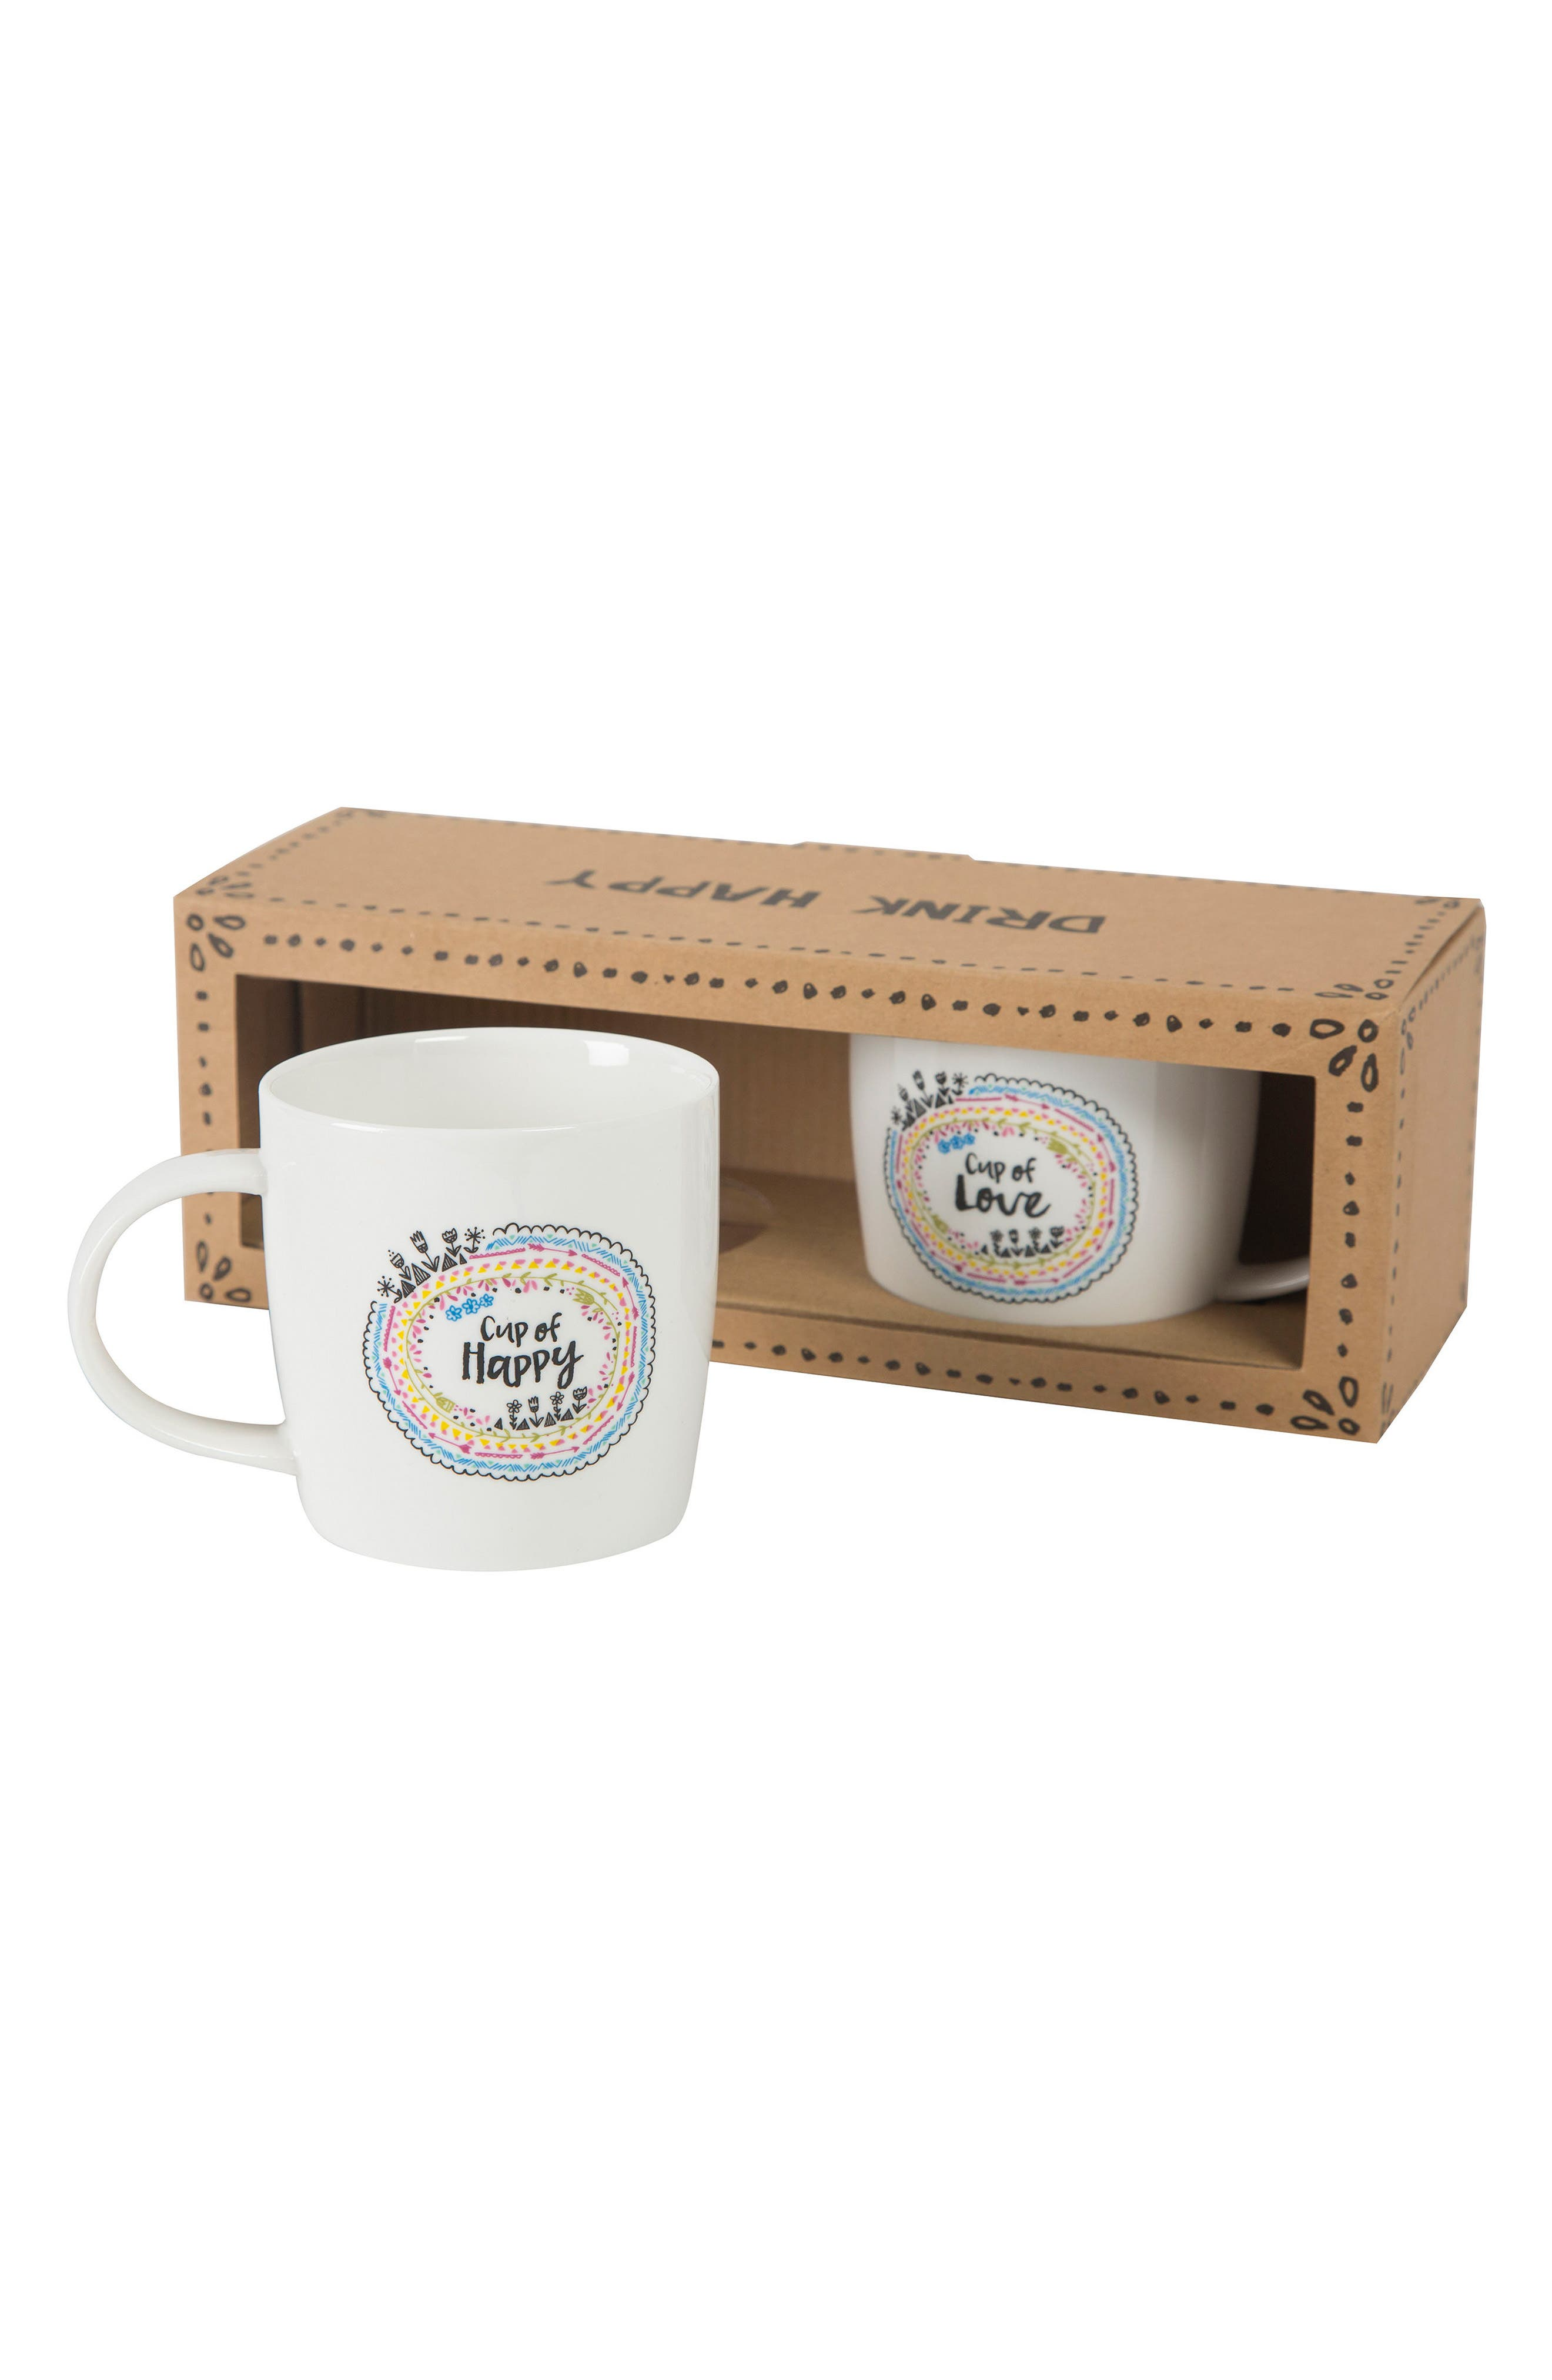 Cup of Happy & Cup of Love Set of 2 Mugs,                             Alternate thumbnail 2, color,                             Ivory